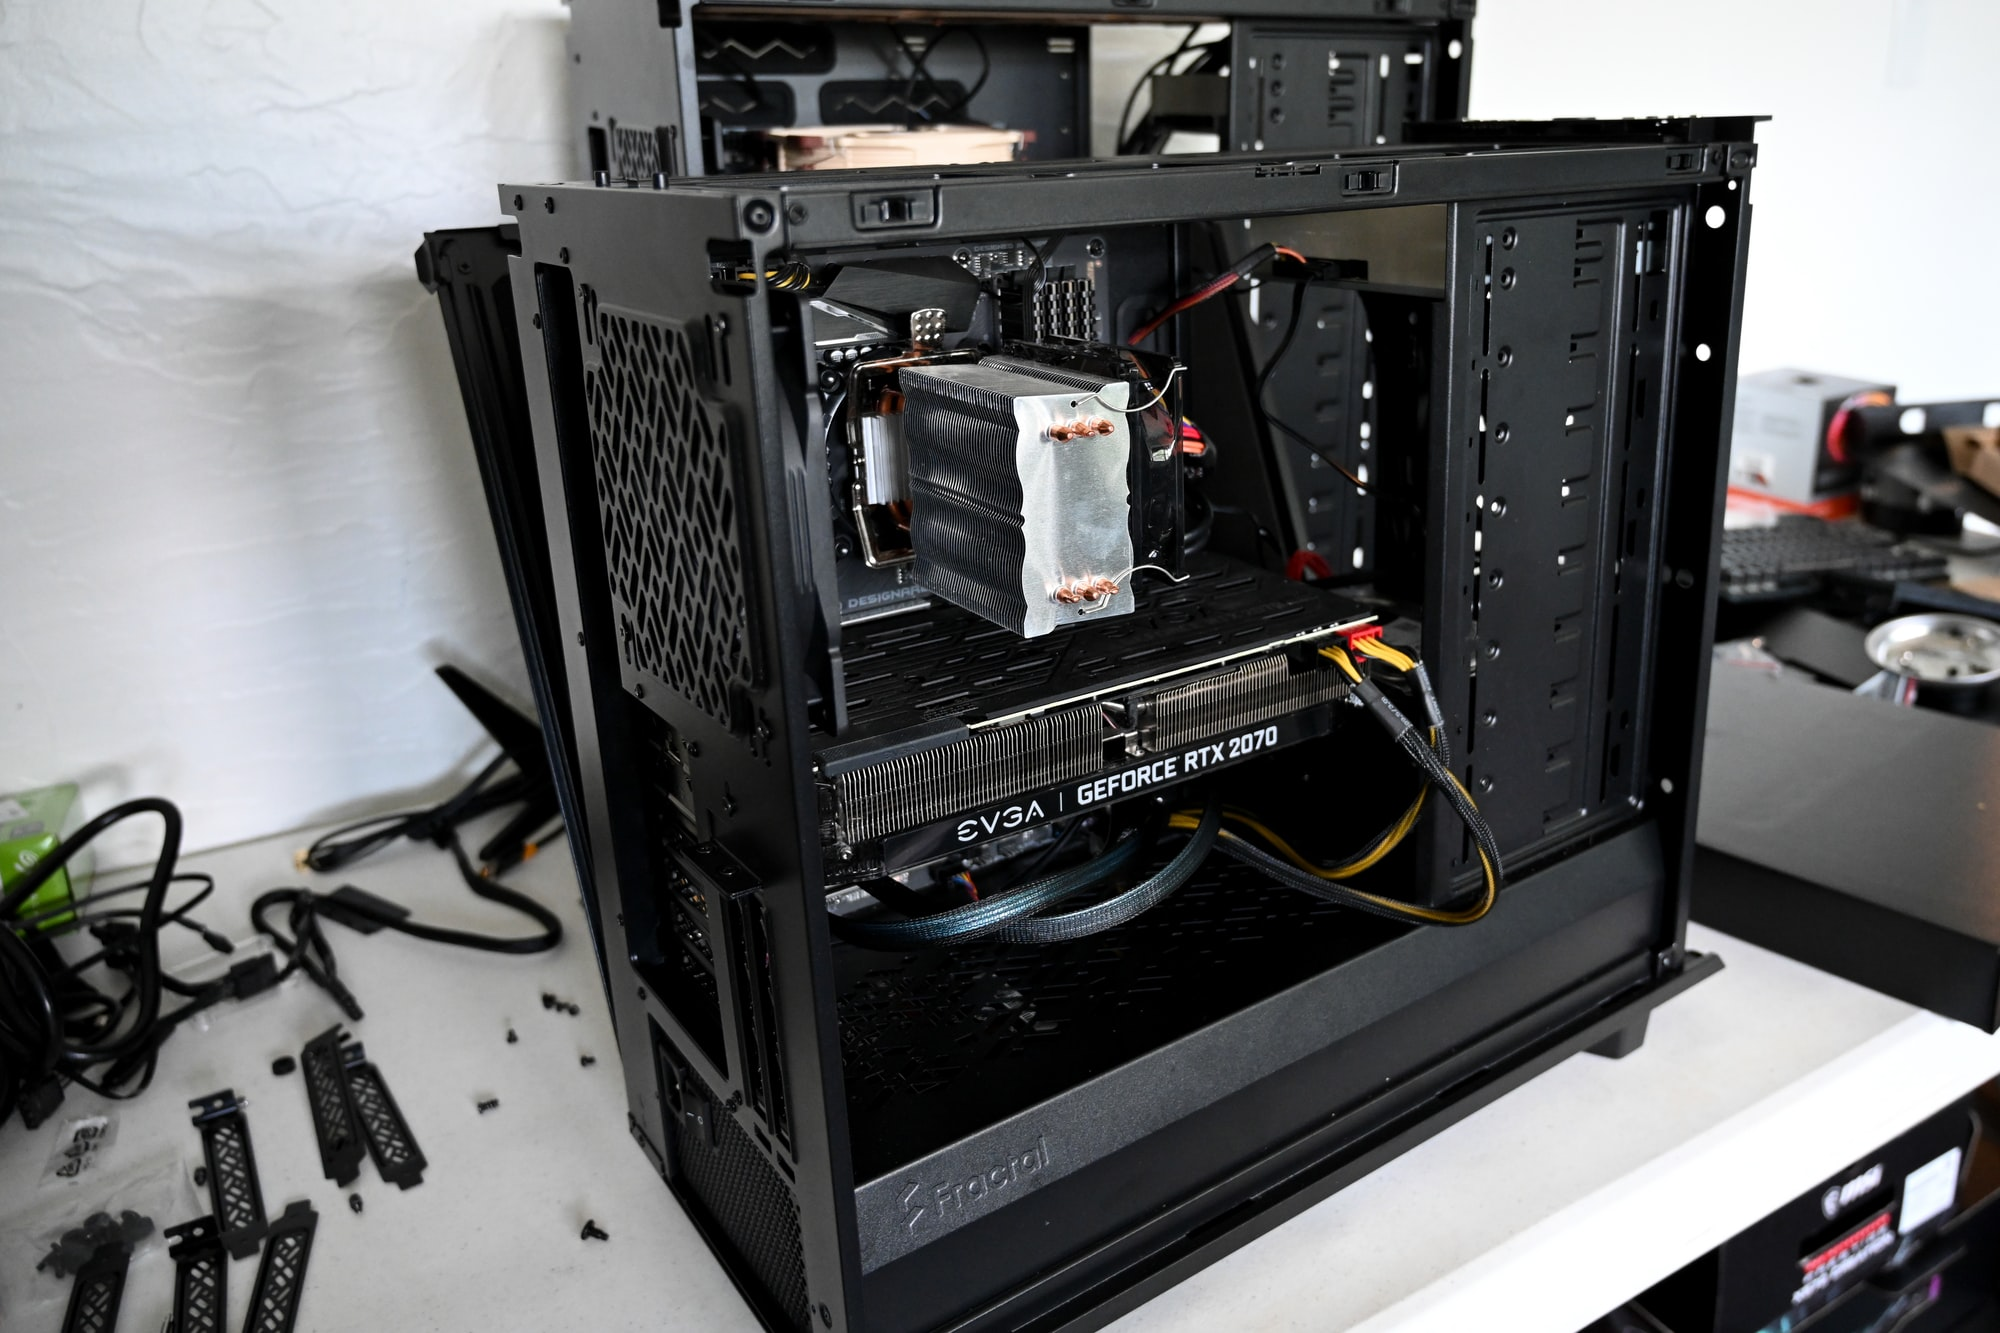 My First Gaming PC, Ever!